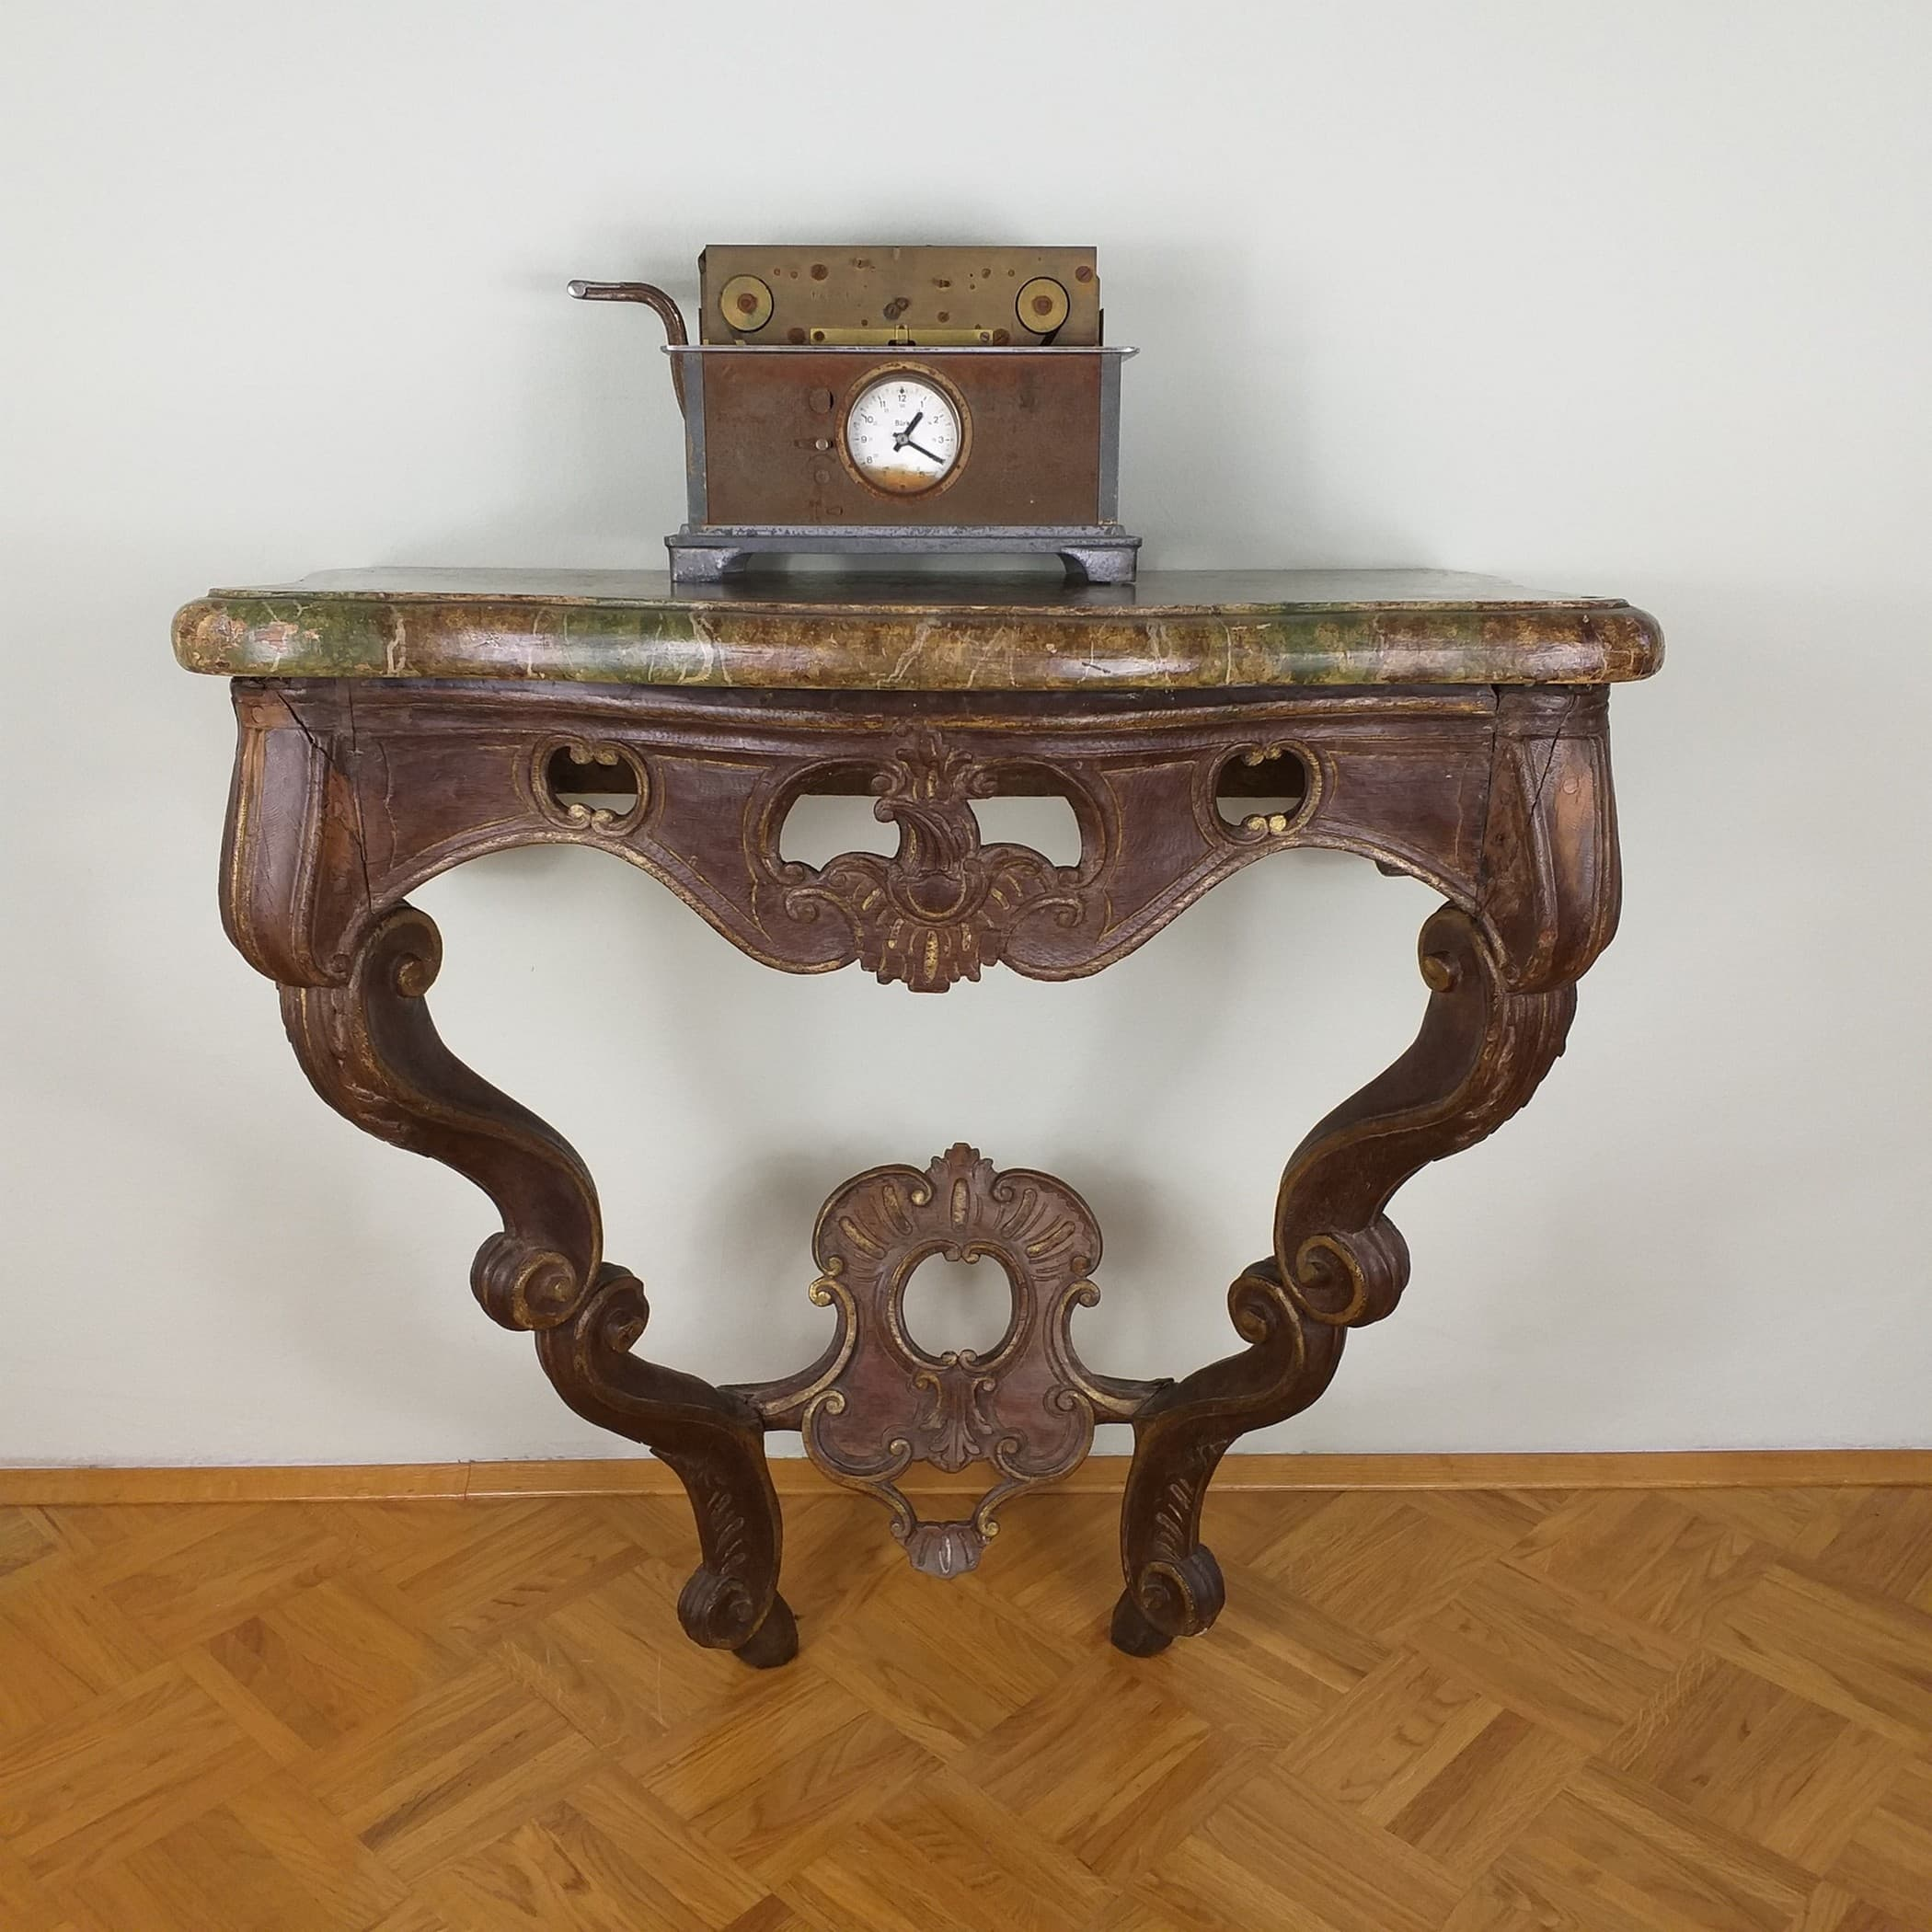 Antique old church console table 19th century Germany Original decorative wood carving Baroque